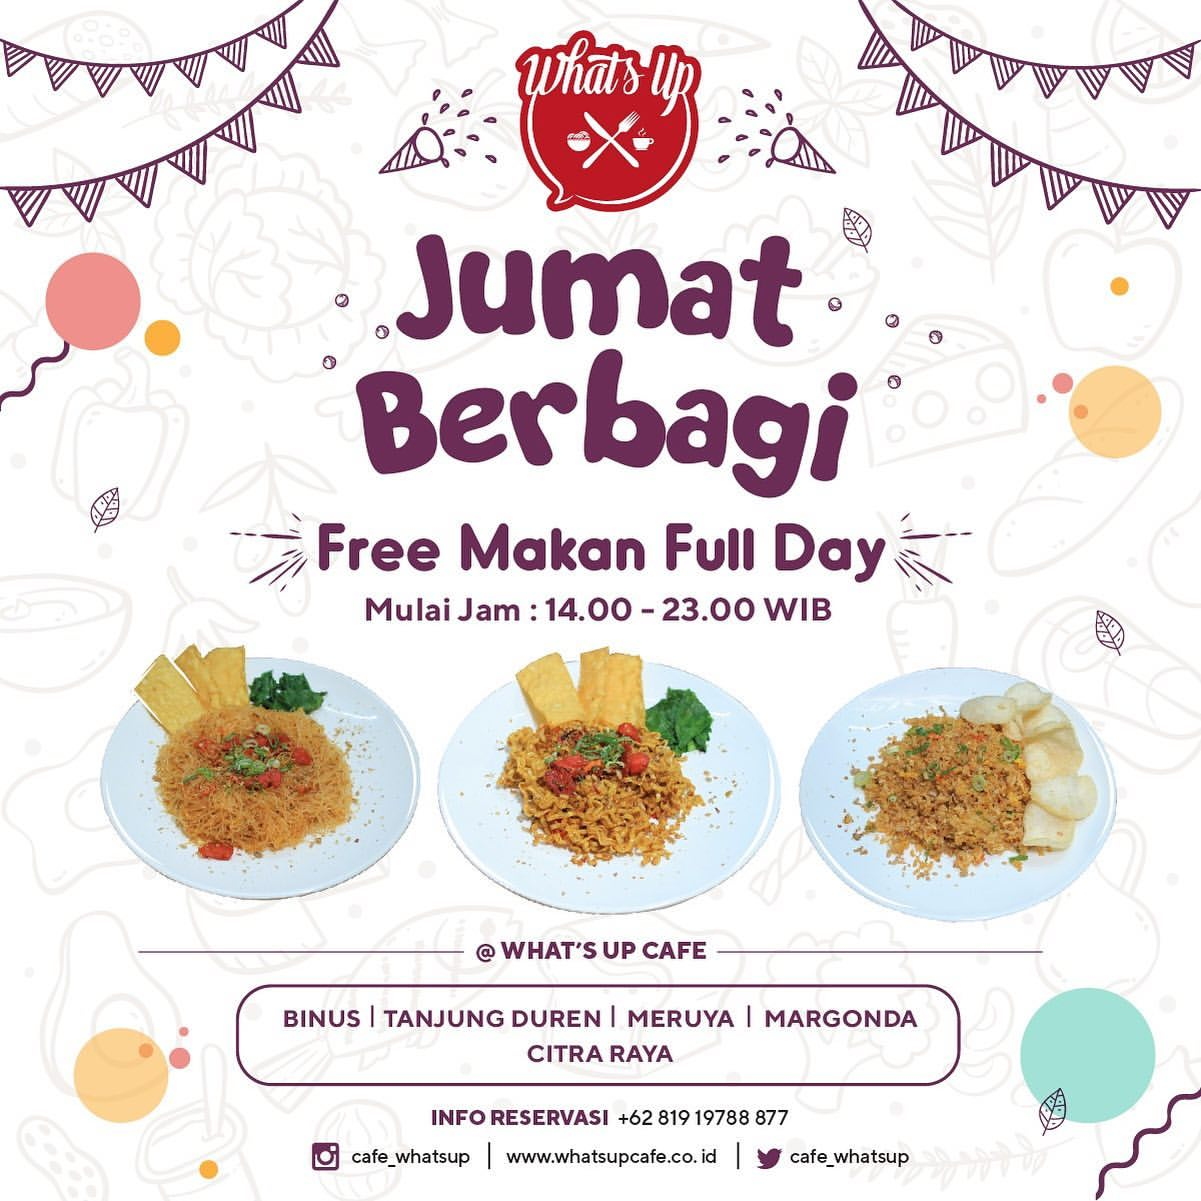 WHAT'S UP CAFE Promo Jumat Berbagi, Free* Makan Full Day